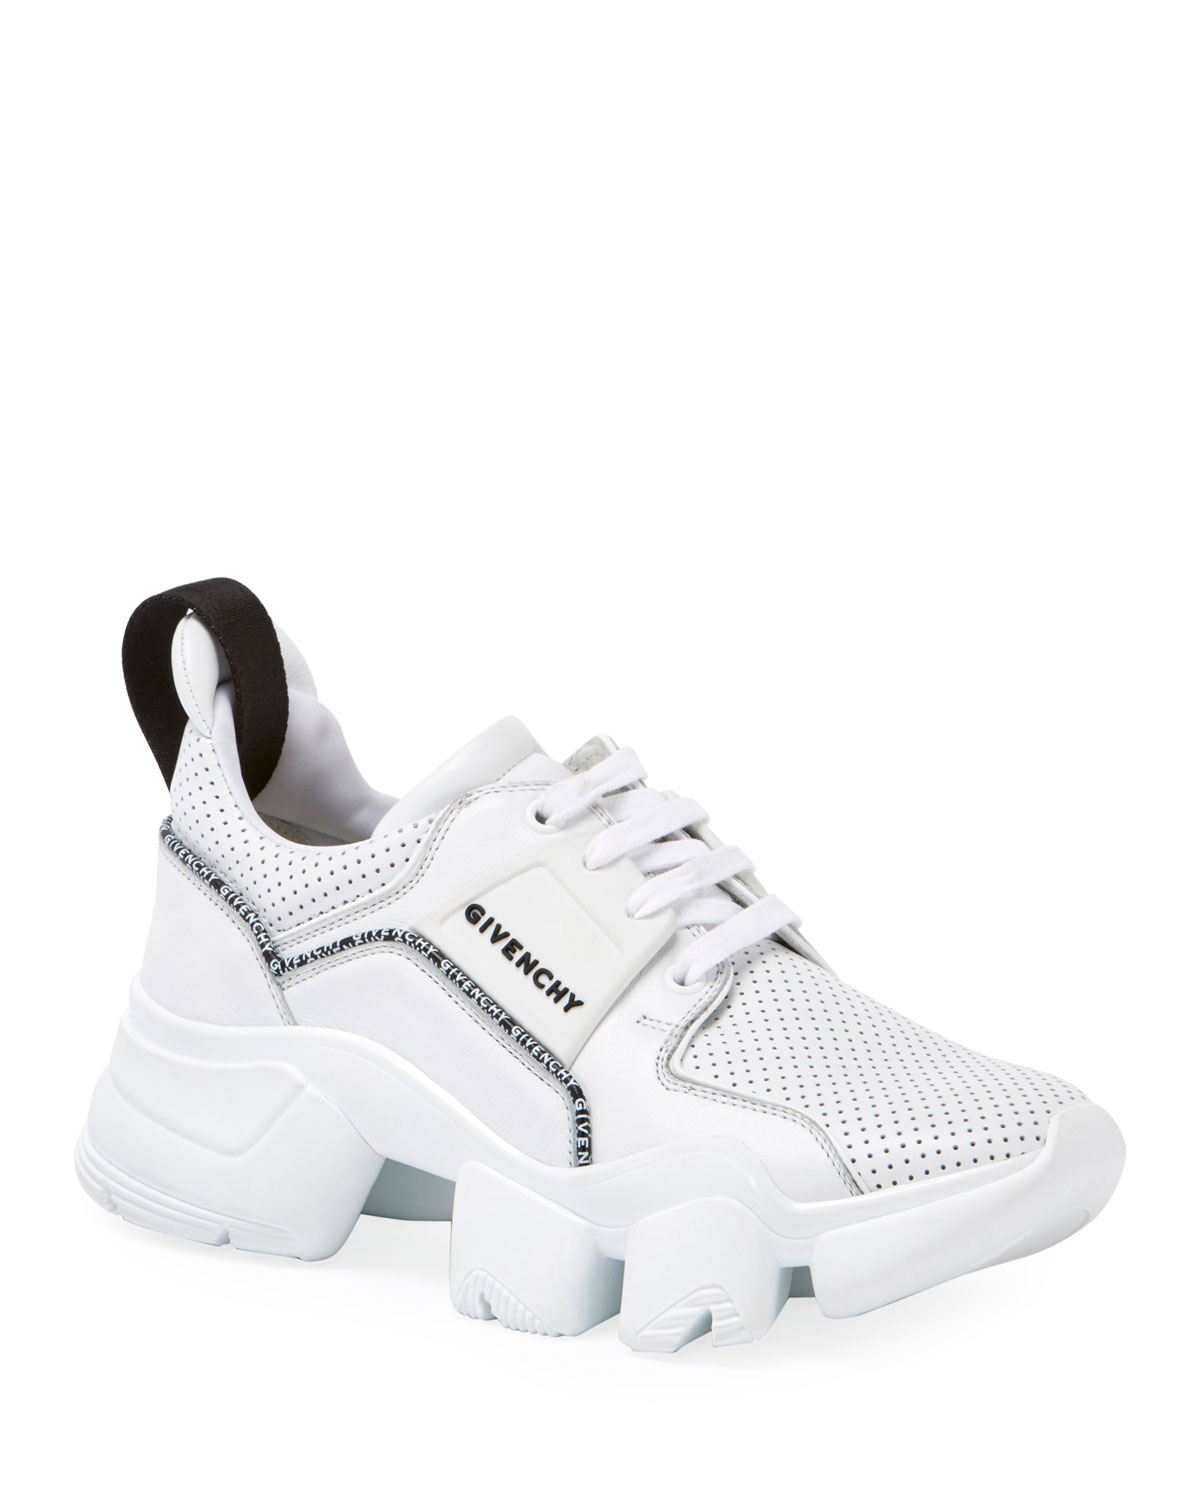 Givenchy Sneakers JAW LOW-TOP PERFORATED LEATHER SNEAKERS